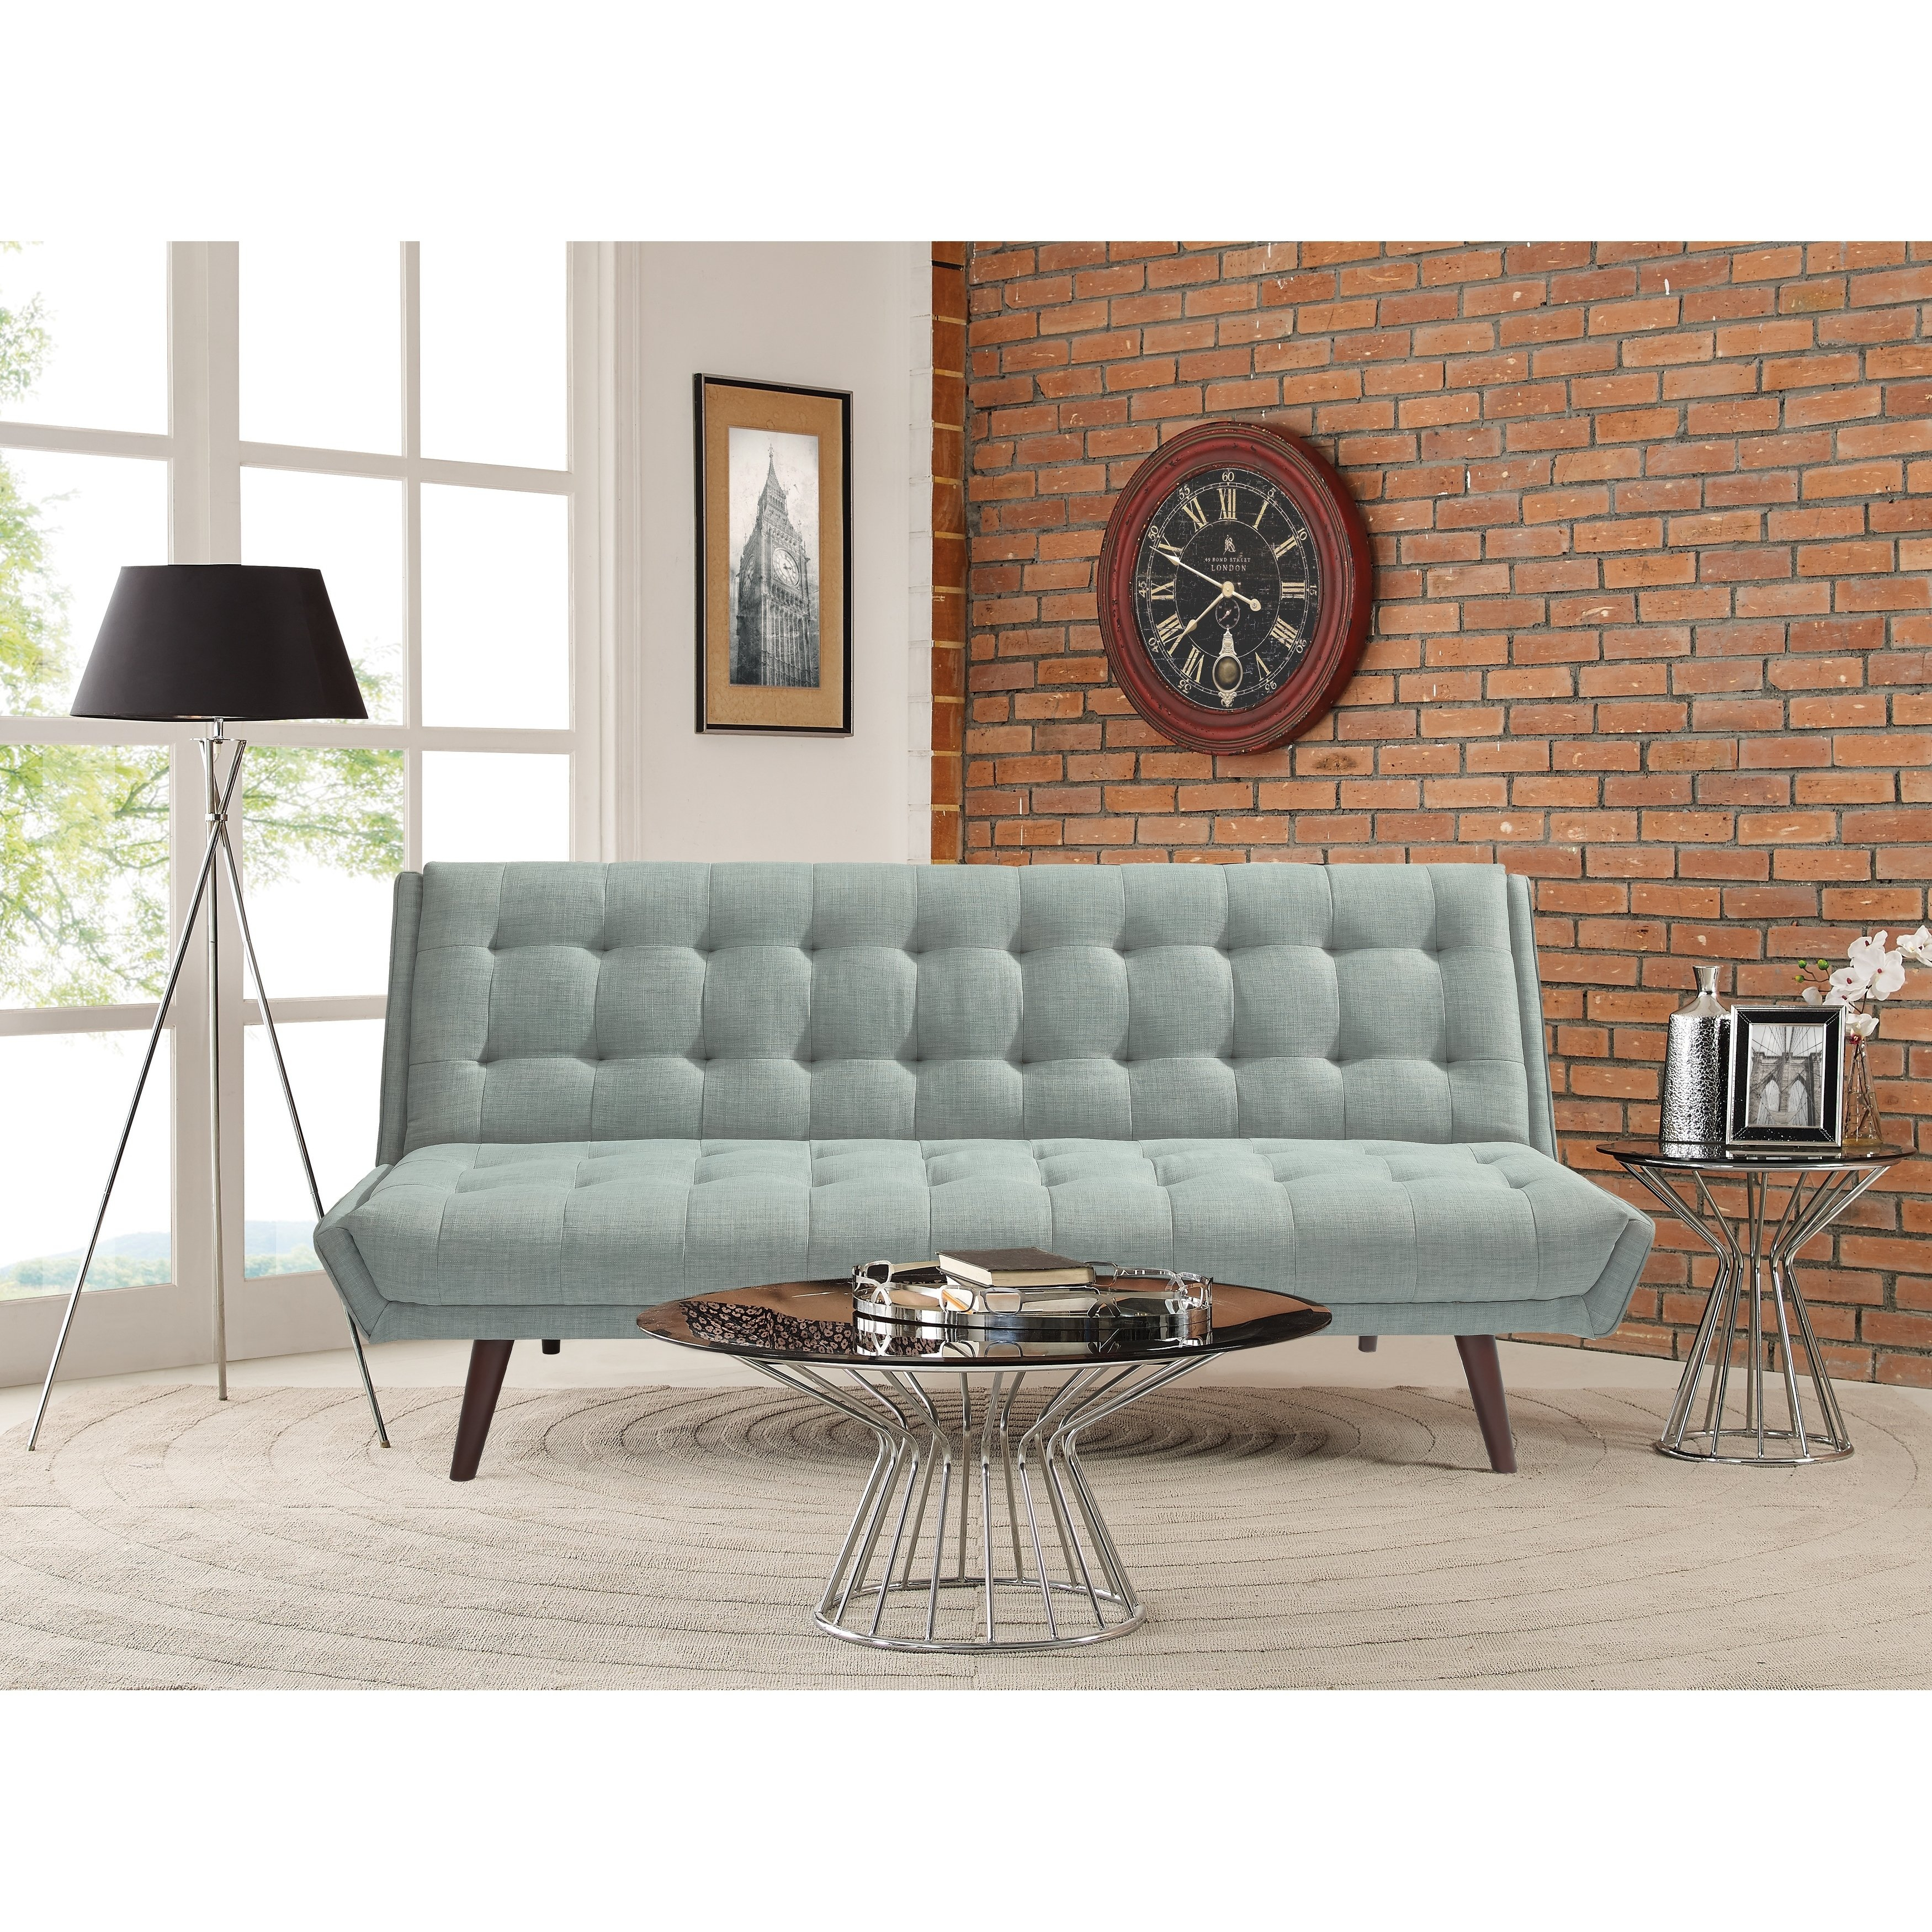 Shop Relax A Lounger Landry Convertible Sofa – Free Shipping Today Regarding Landry Sofa Chairs (Image 25 of 25)